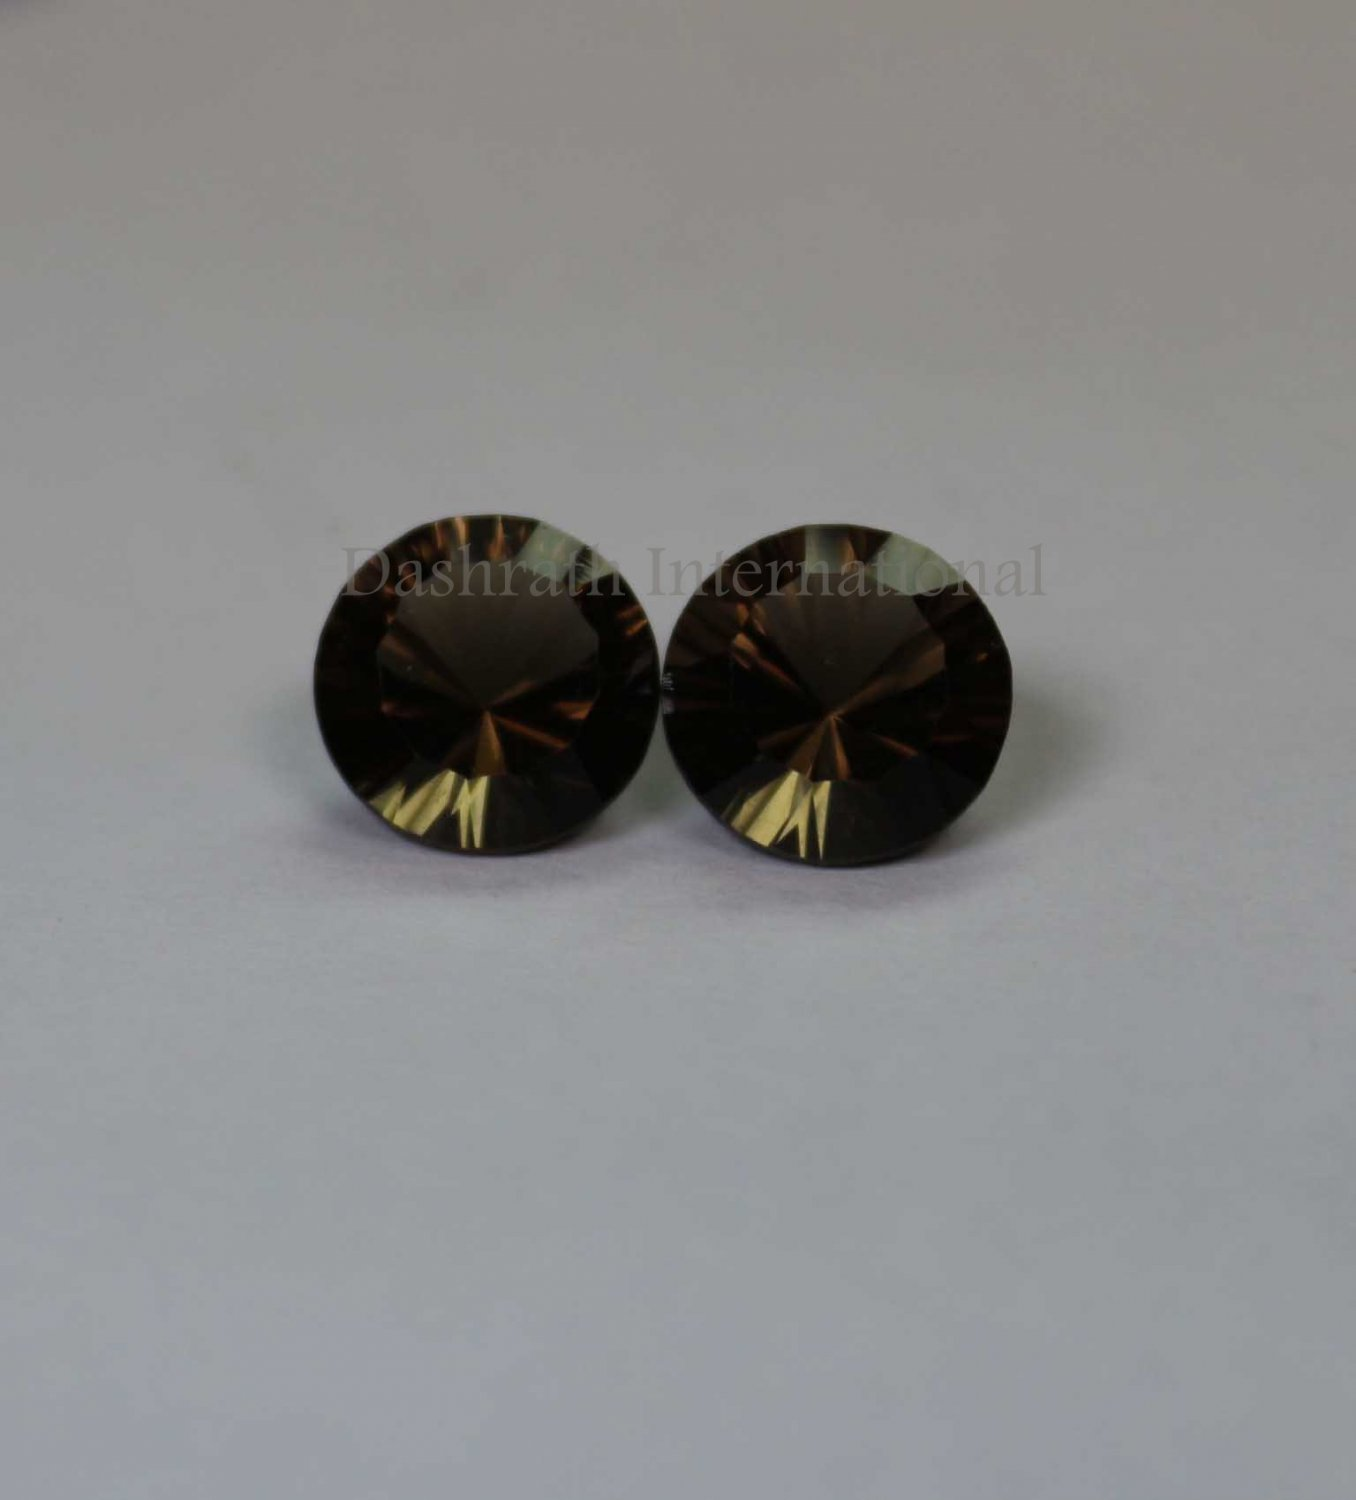 18mmNatural Smoky Quartz Concave Cut Round 2 Piece (1 Pair )   (SI) Top Quality  Loose Gemstone